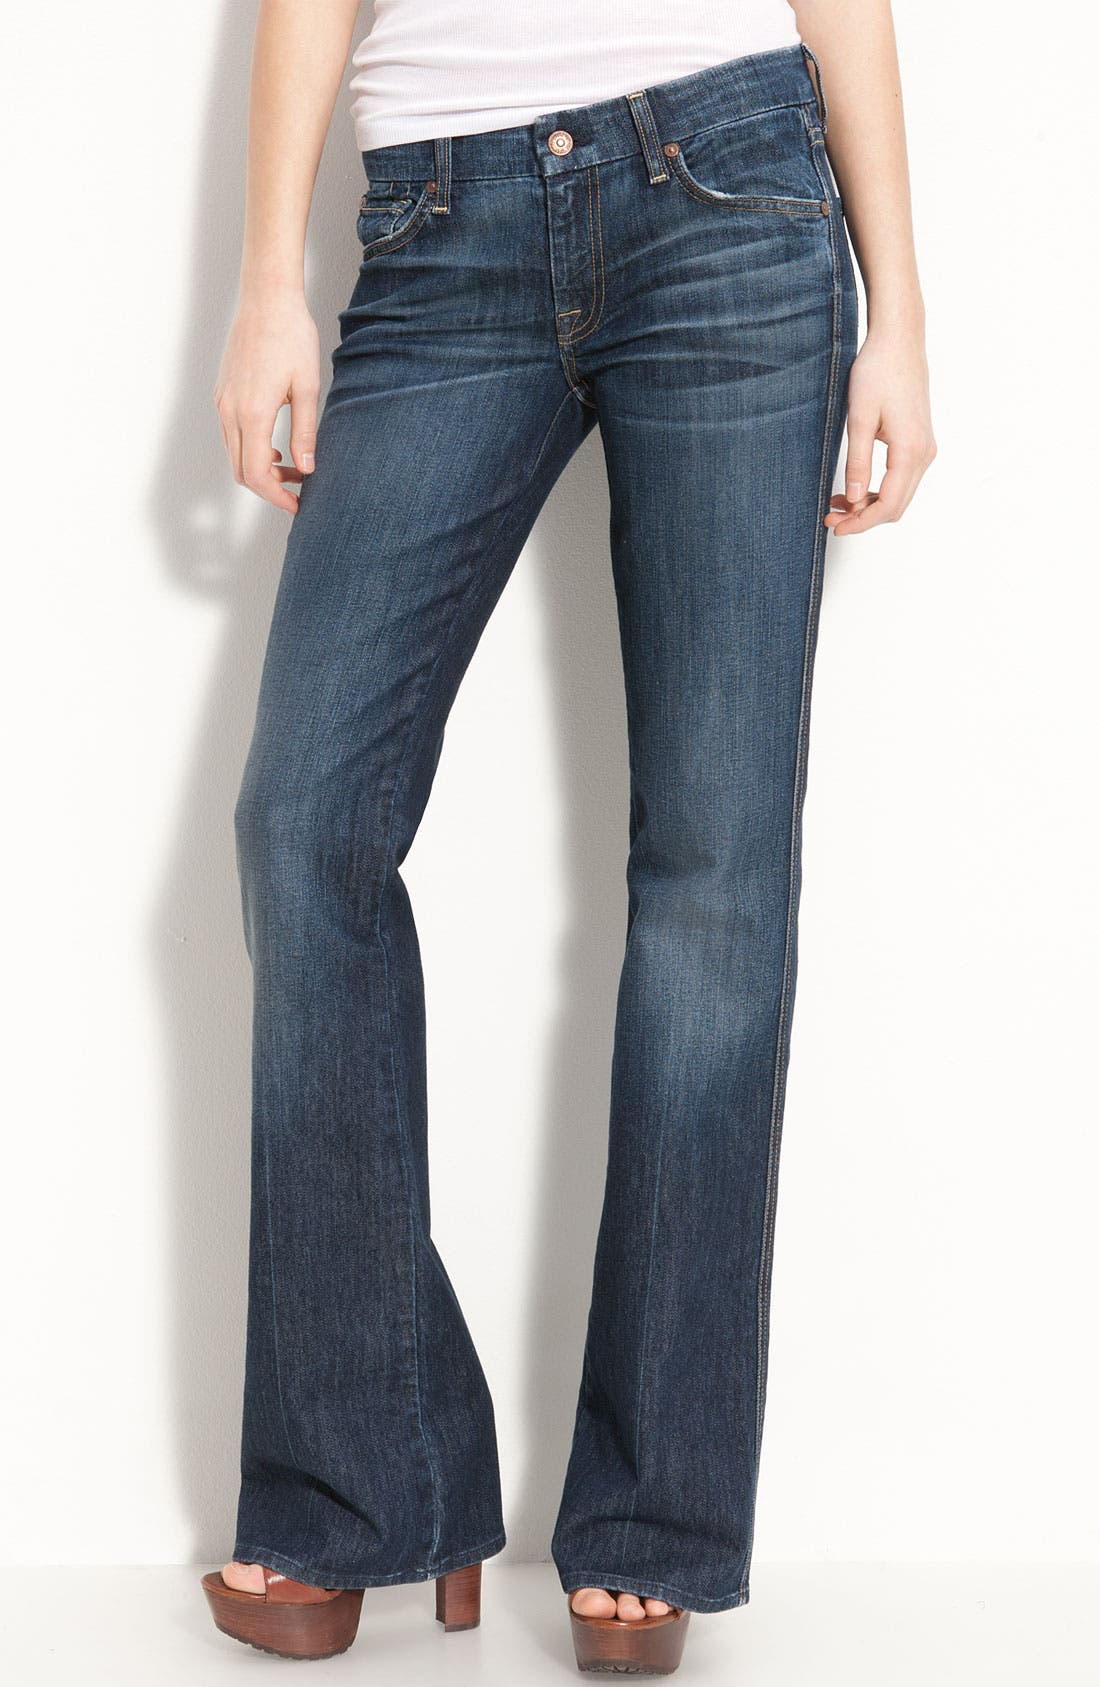 Alternate Image 1 Selected - 7 For All Mankind® Stretch Denim Bootcut Jeans (Nouveau New York) (Petite)